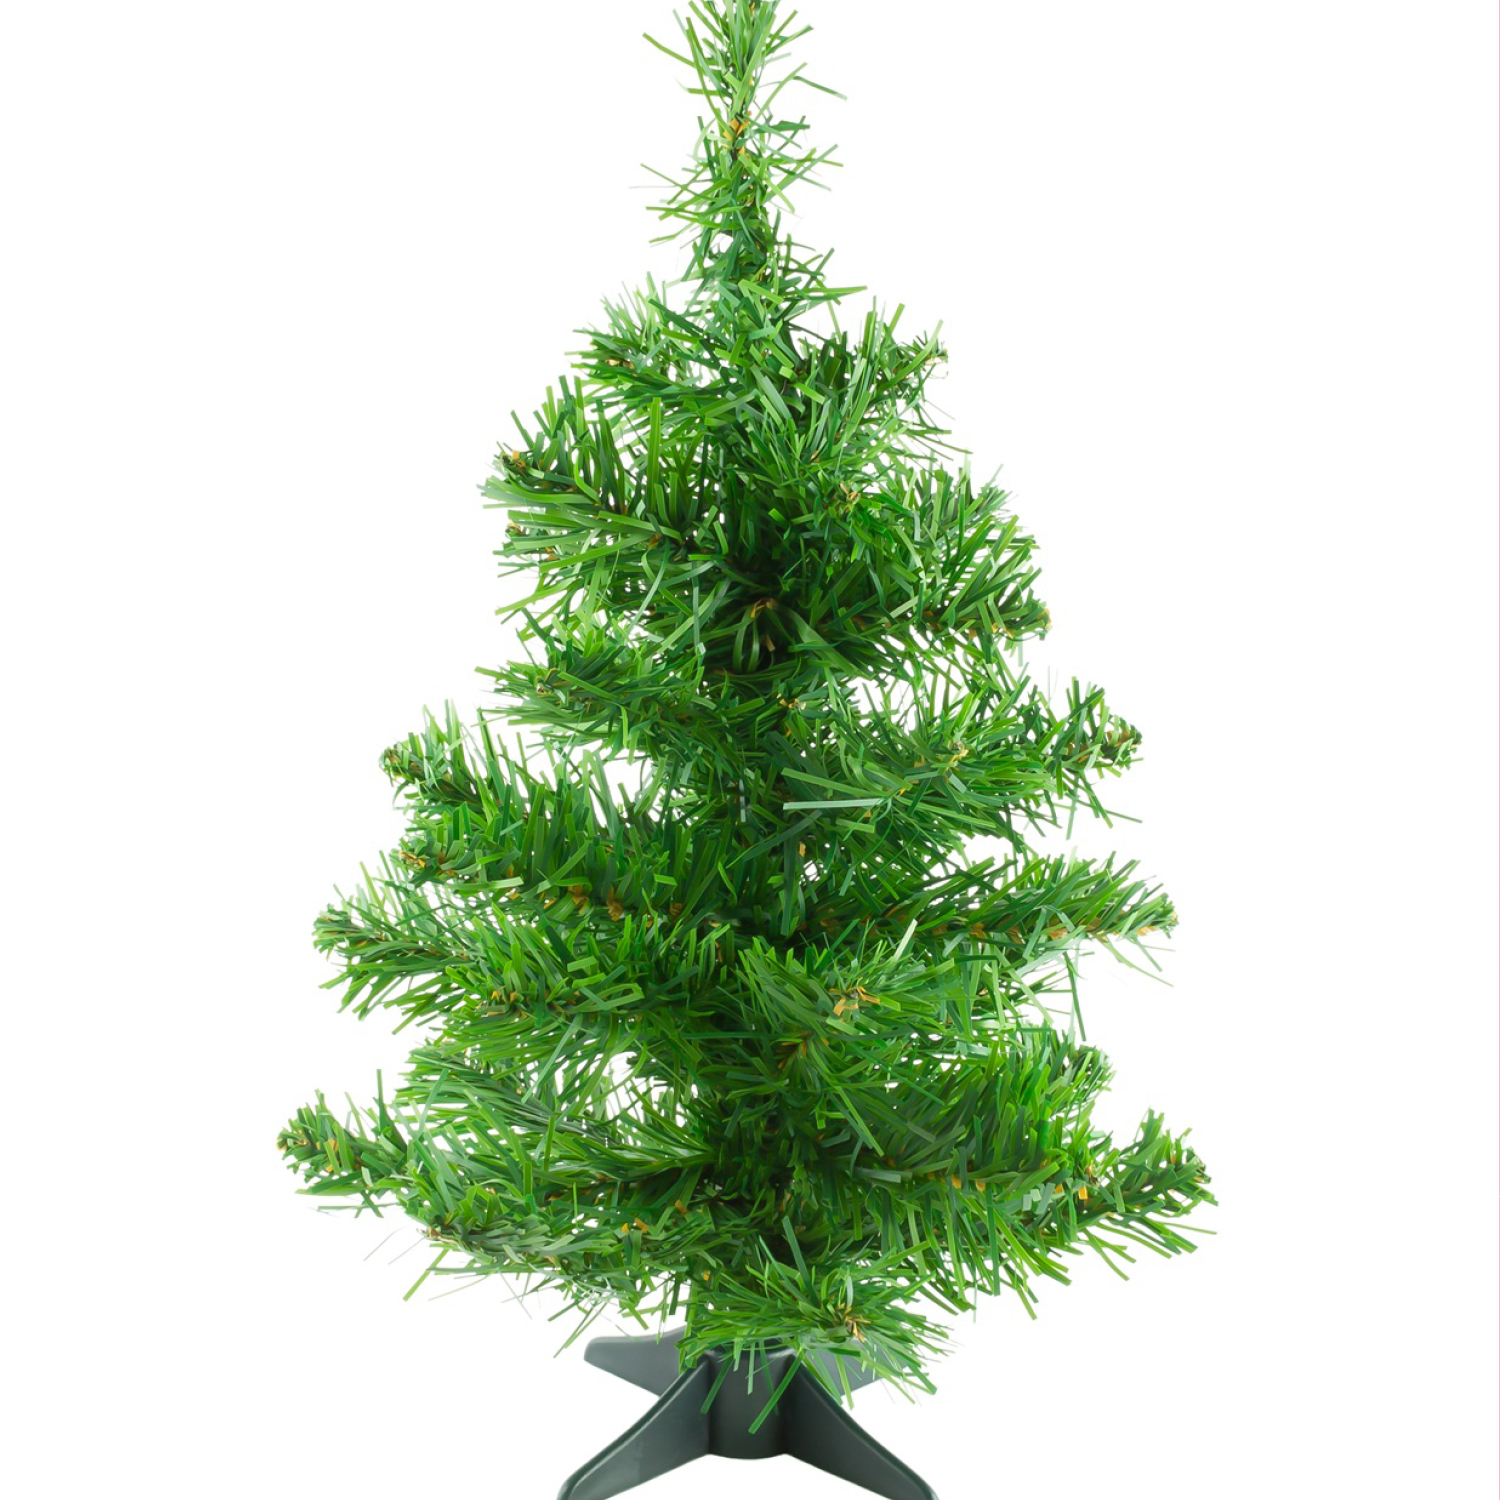 color classification 6 0 cm christmas tree package with lights6 0 cm christmas tree package without lights 60cm christmas tree - Mini Christmas Tree Ornaments